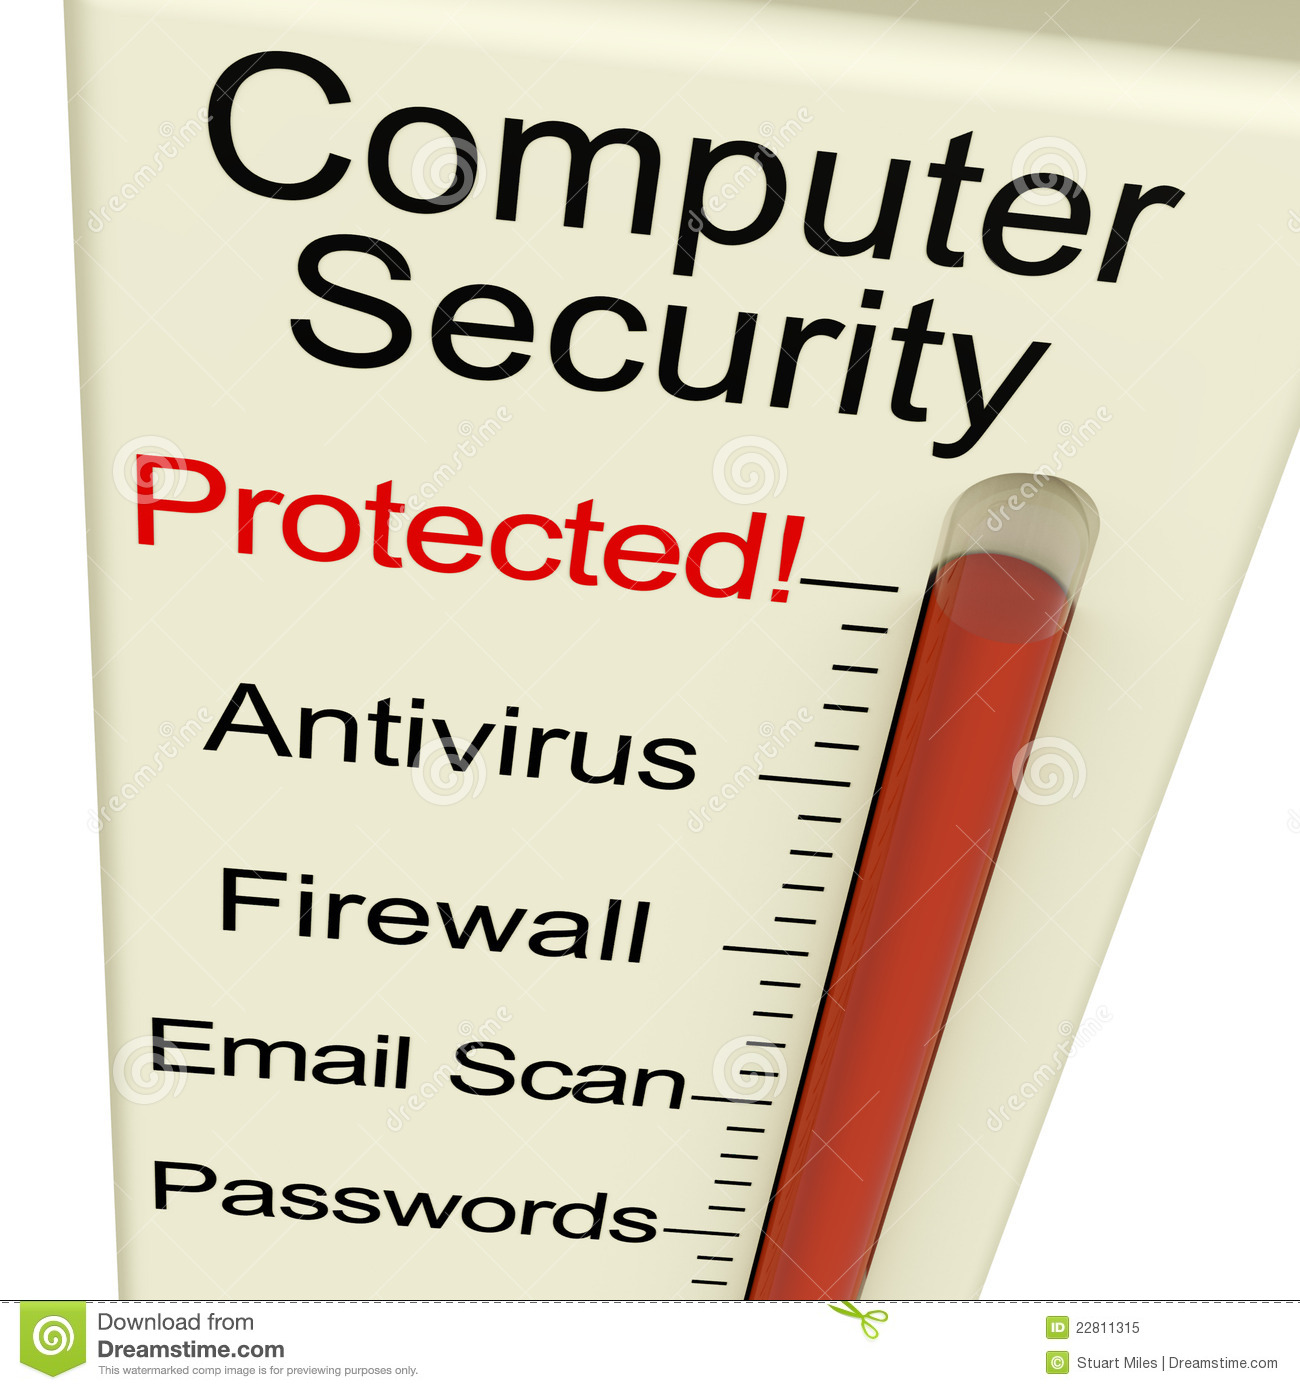 Computer security clipart svg black and white Computer Security Protected Meter Royalty Free Stock Photo - Image ... svg black and white